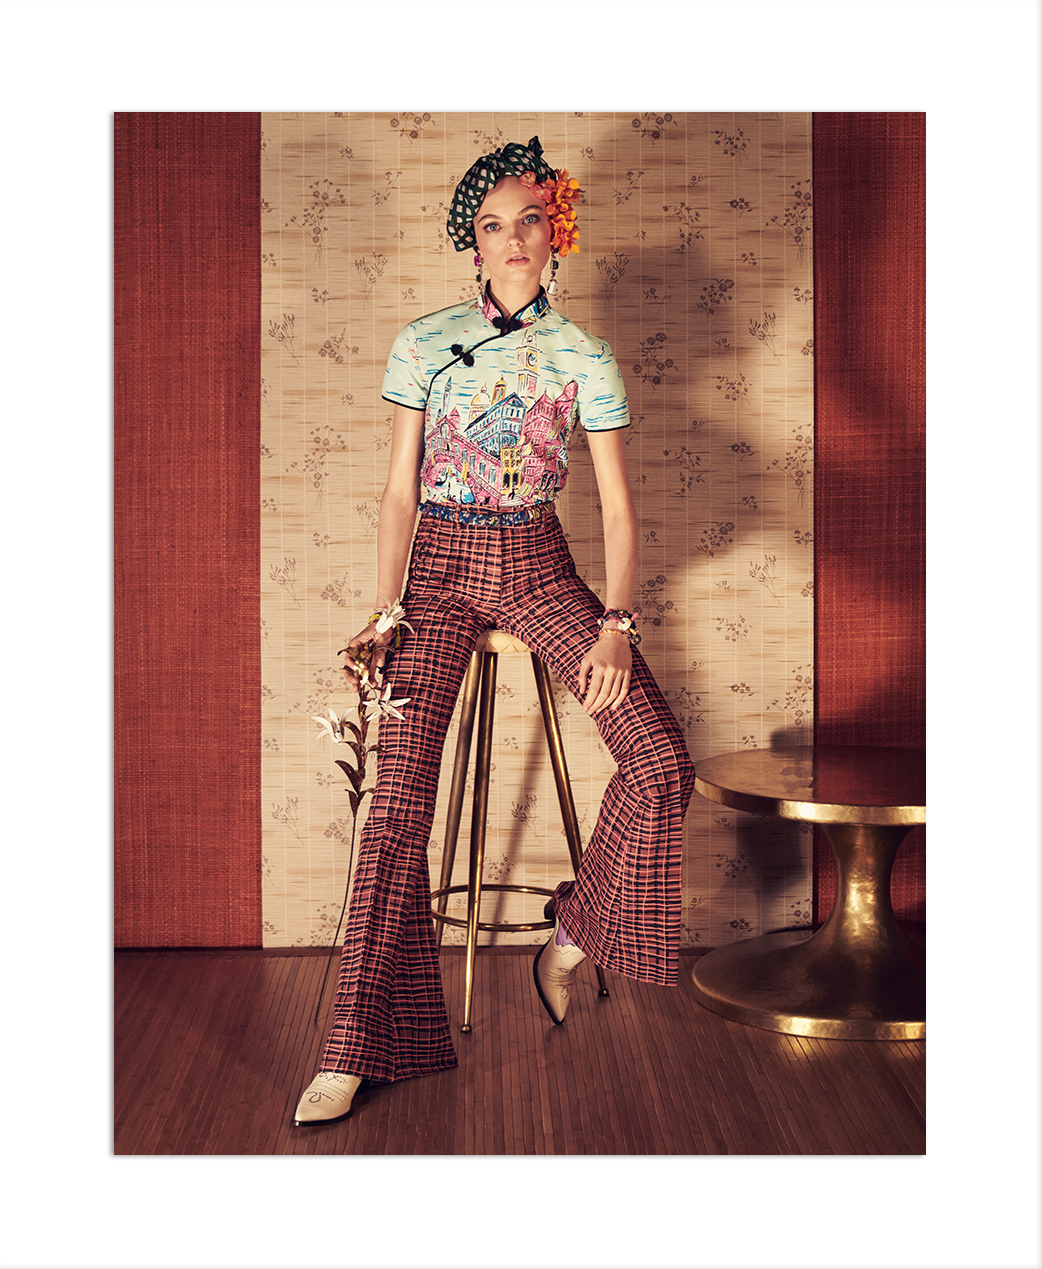 ROSE & IVY Journal Spring Has Arrived at Zara and We Want Everything